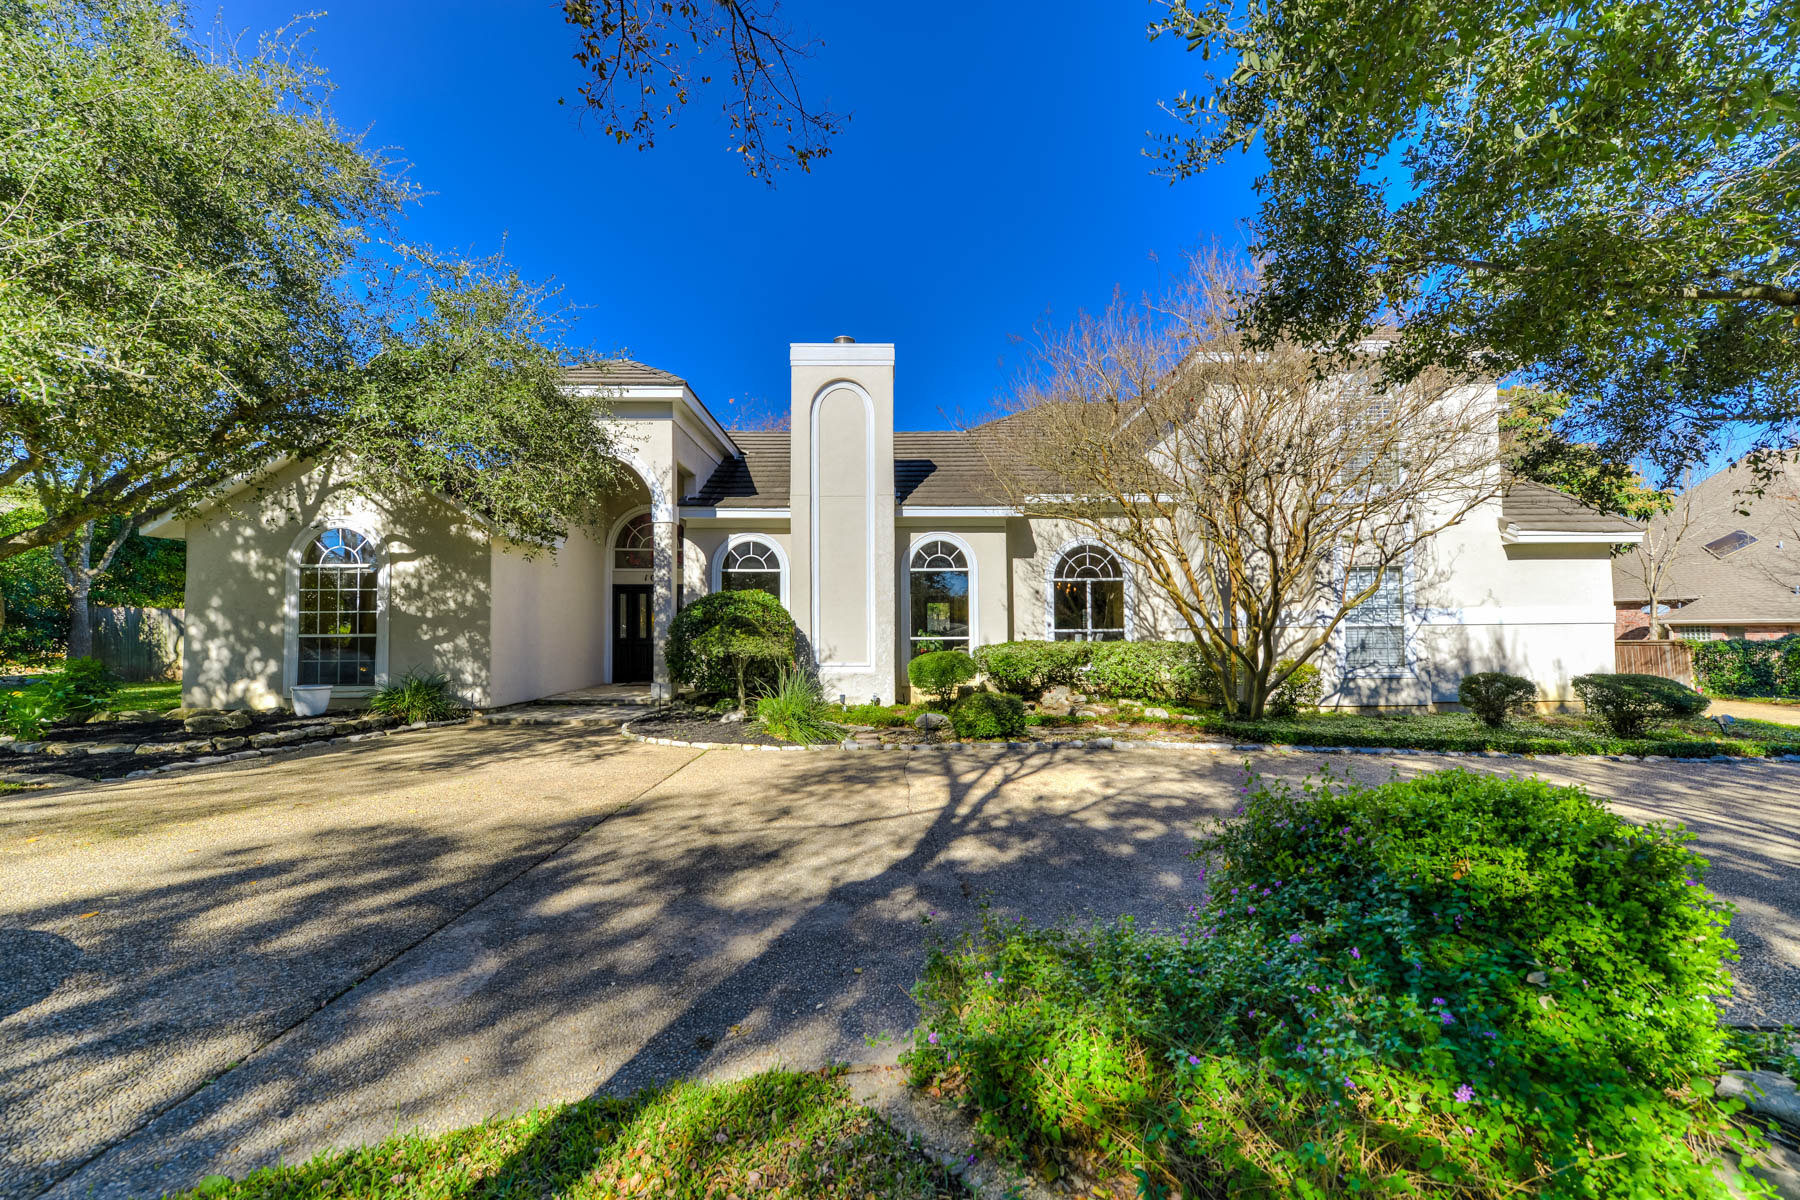 Single Family Home for Sale at Gorgeous Home in Shavano Park With a Tennis Court 107 Post Oak Way San Antonio, Texas 78230 United States